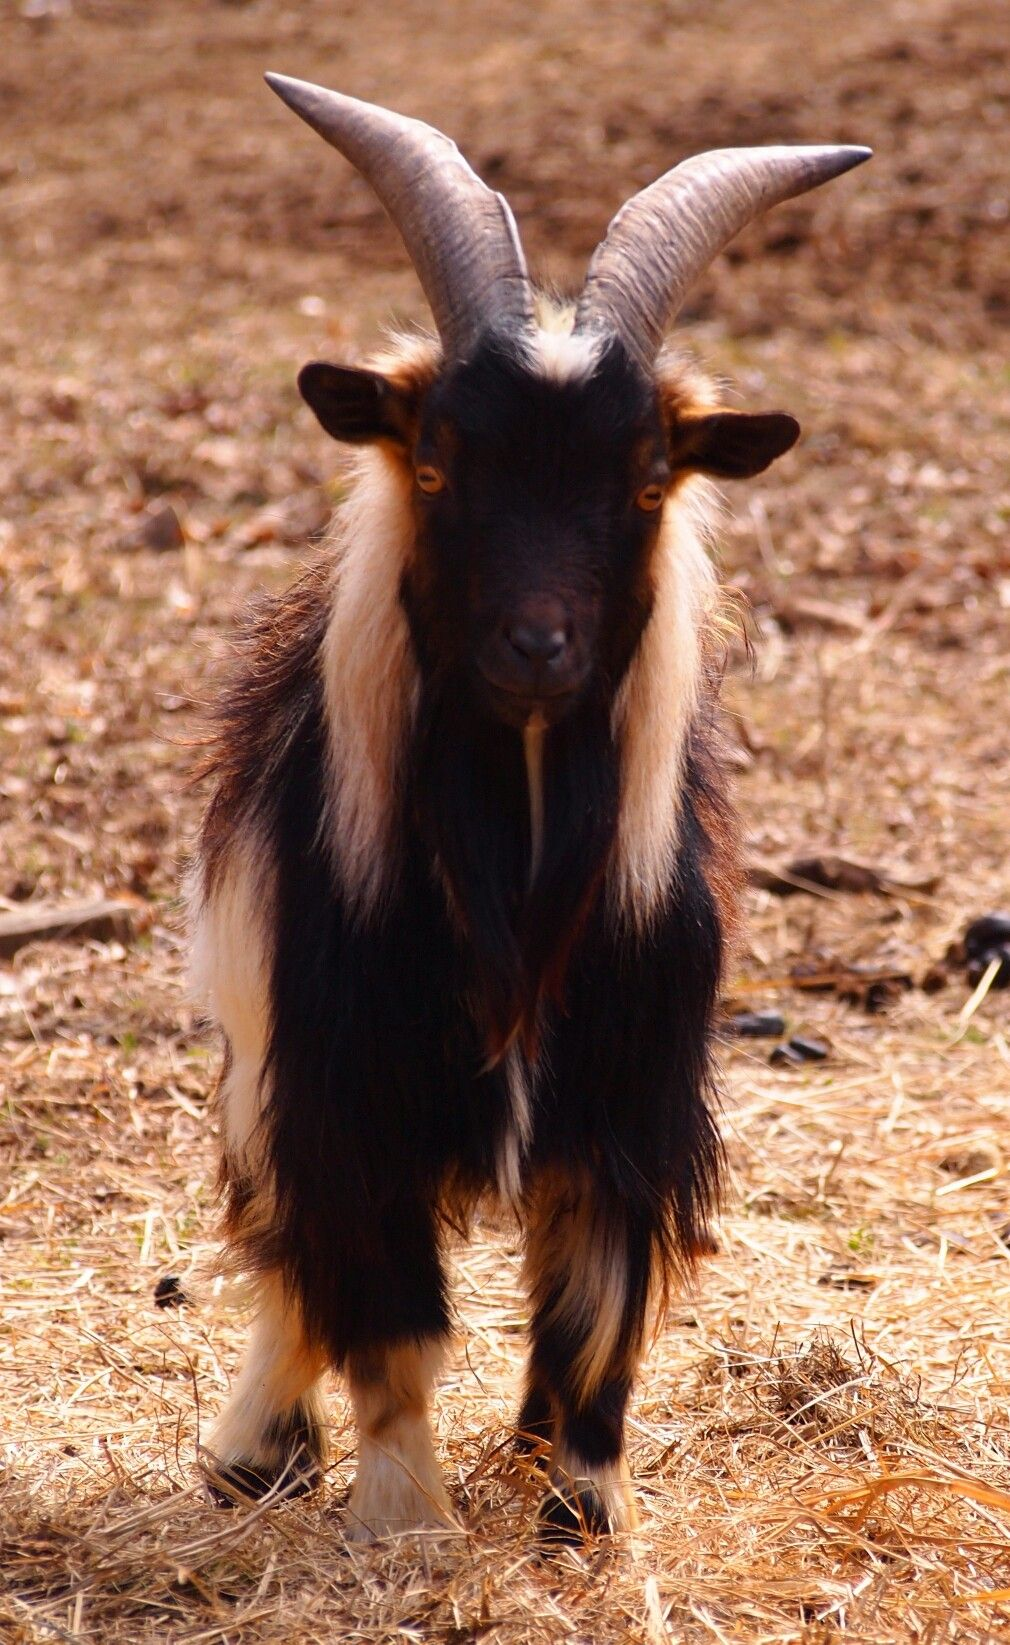 Nigerian Dwarf Billy Capricious Caprines Cute Goats